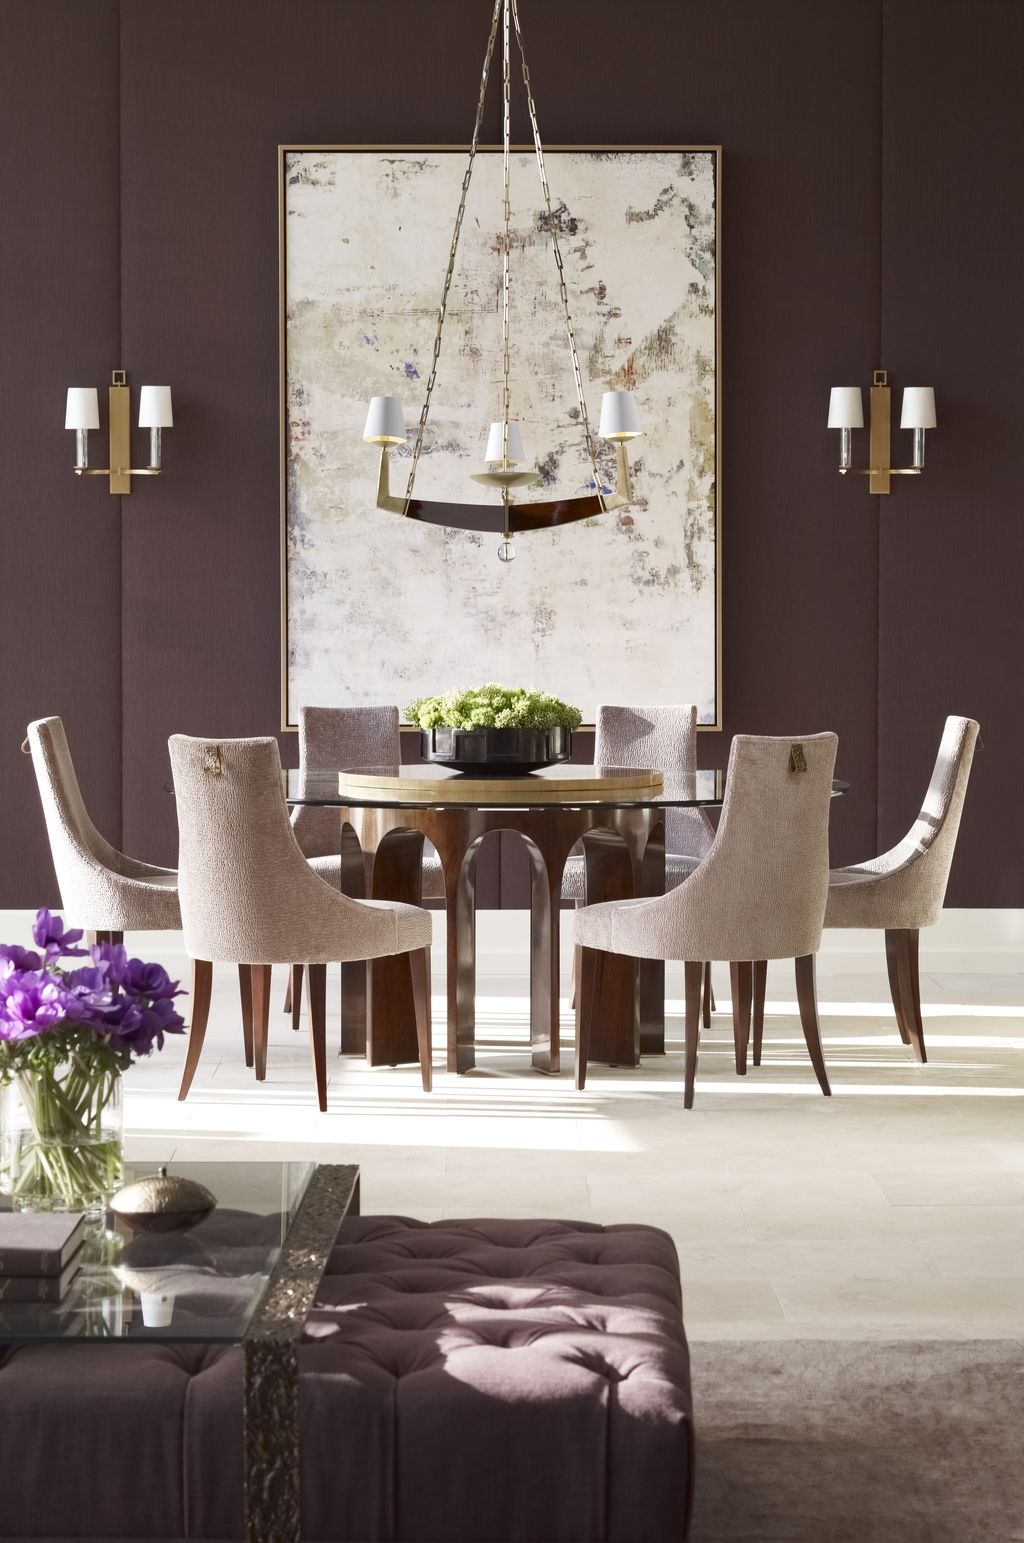 Baker Room Scene Gallery Luxury Dining Room Dining Room Design Dining Room Decor